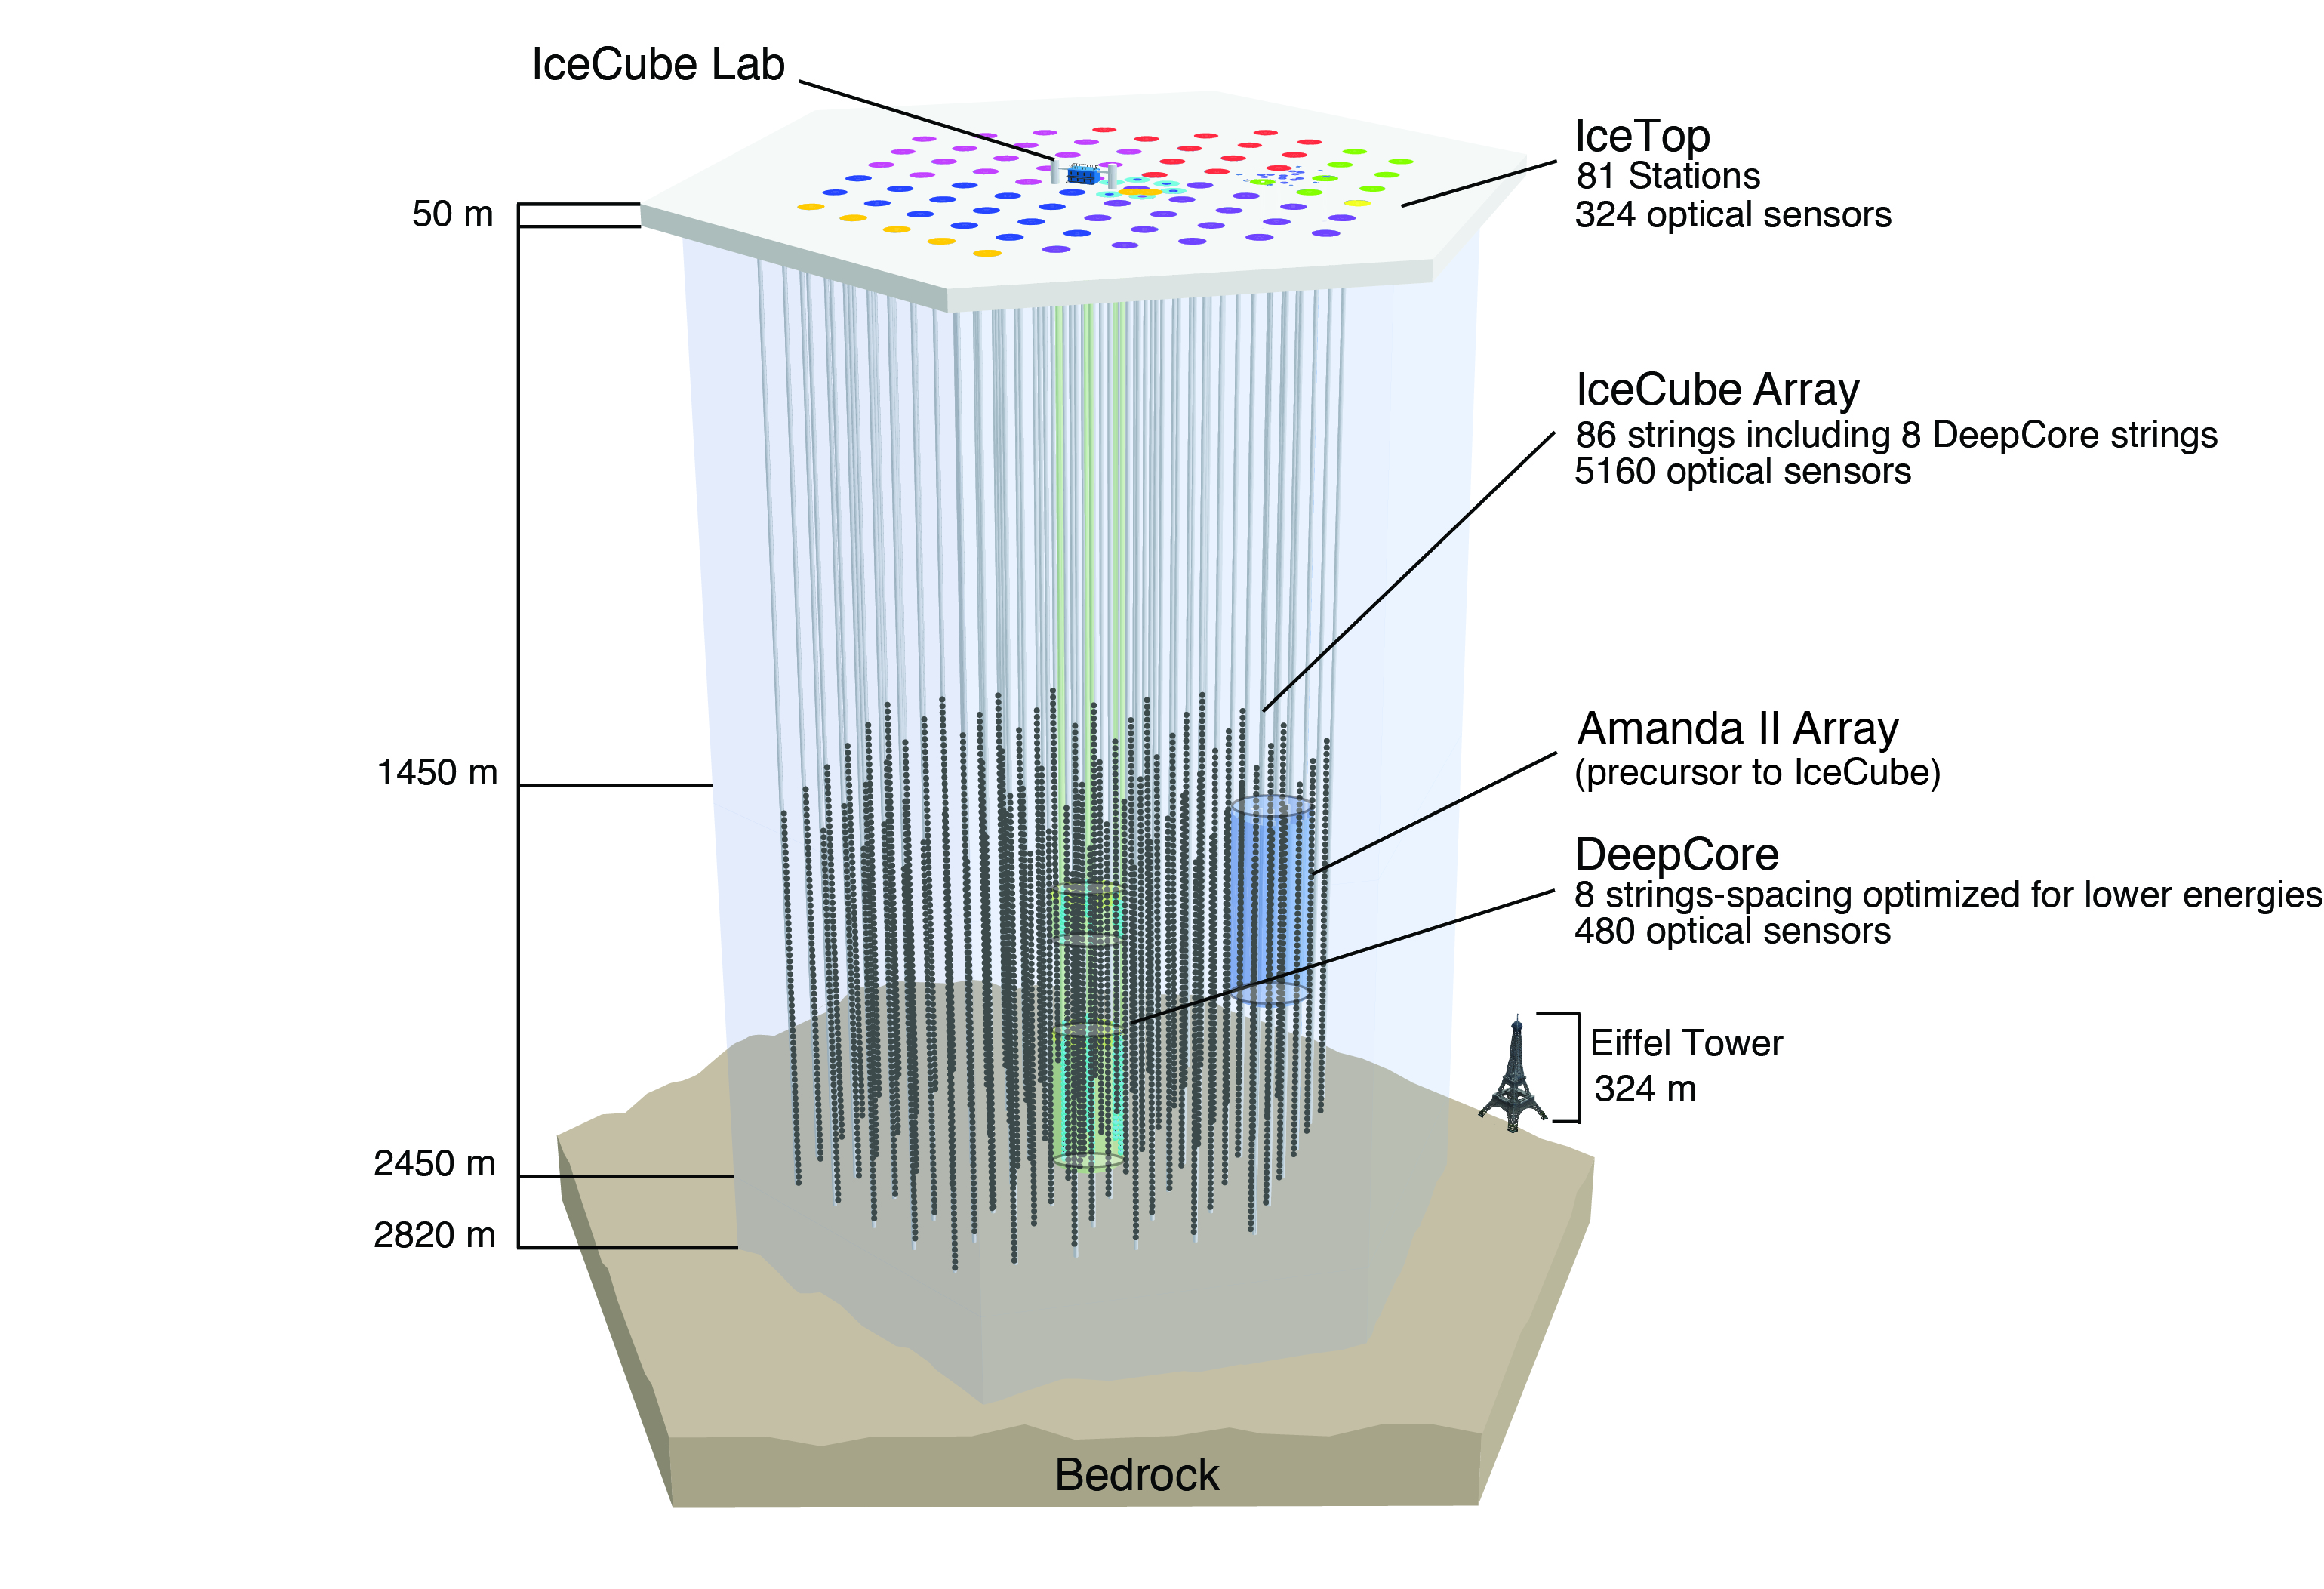 Ghostly neutrino caught in South Pole ice ushers in a new ...Icecube Neutrino Observatory Core